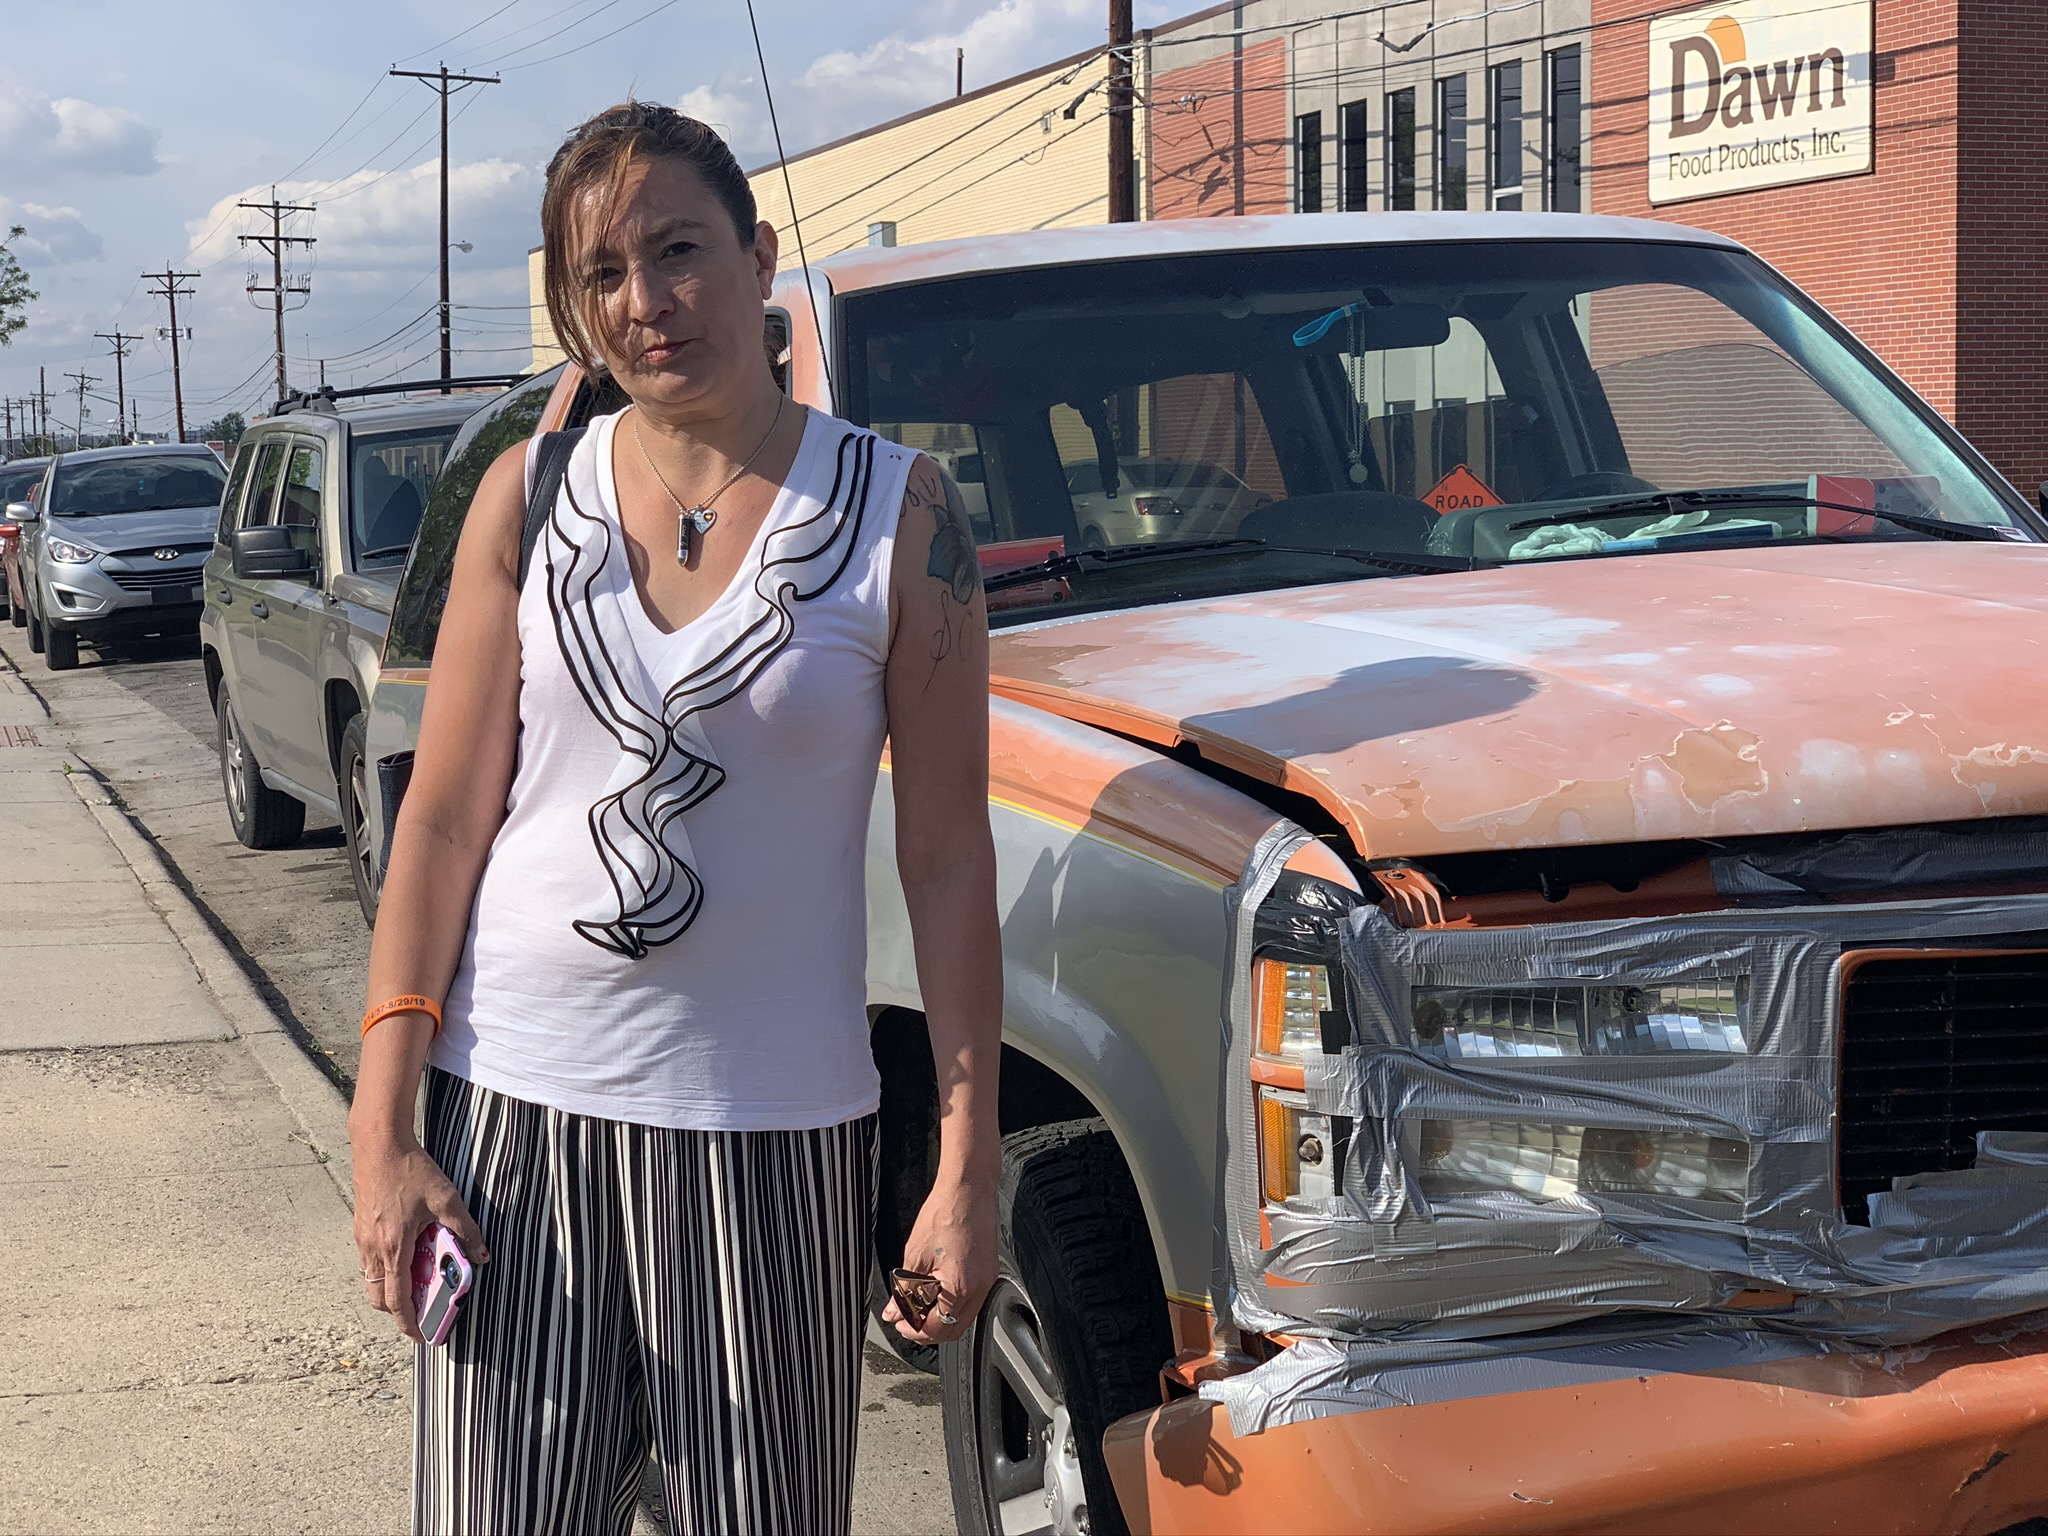 Tiffany Quintana poses for a photo on May 28 in the Sunnyside neighborhood of Denver, near the vehicle where she lived for several weeks.